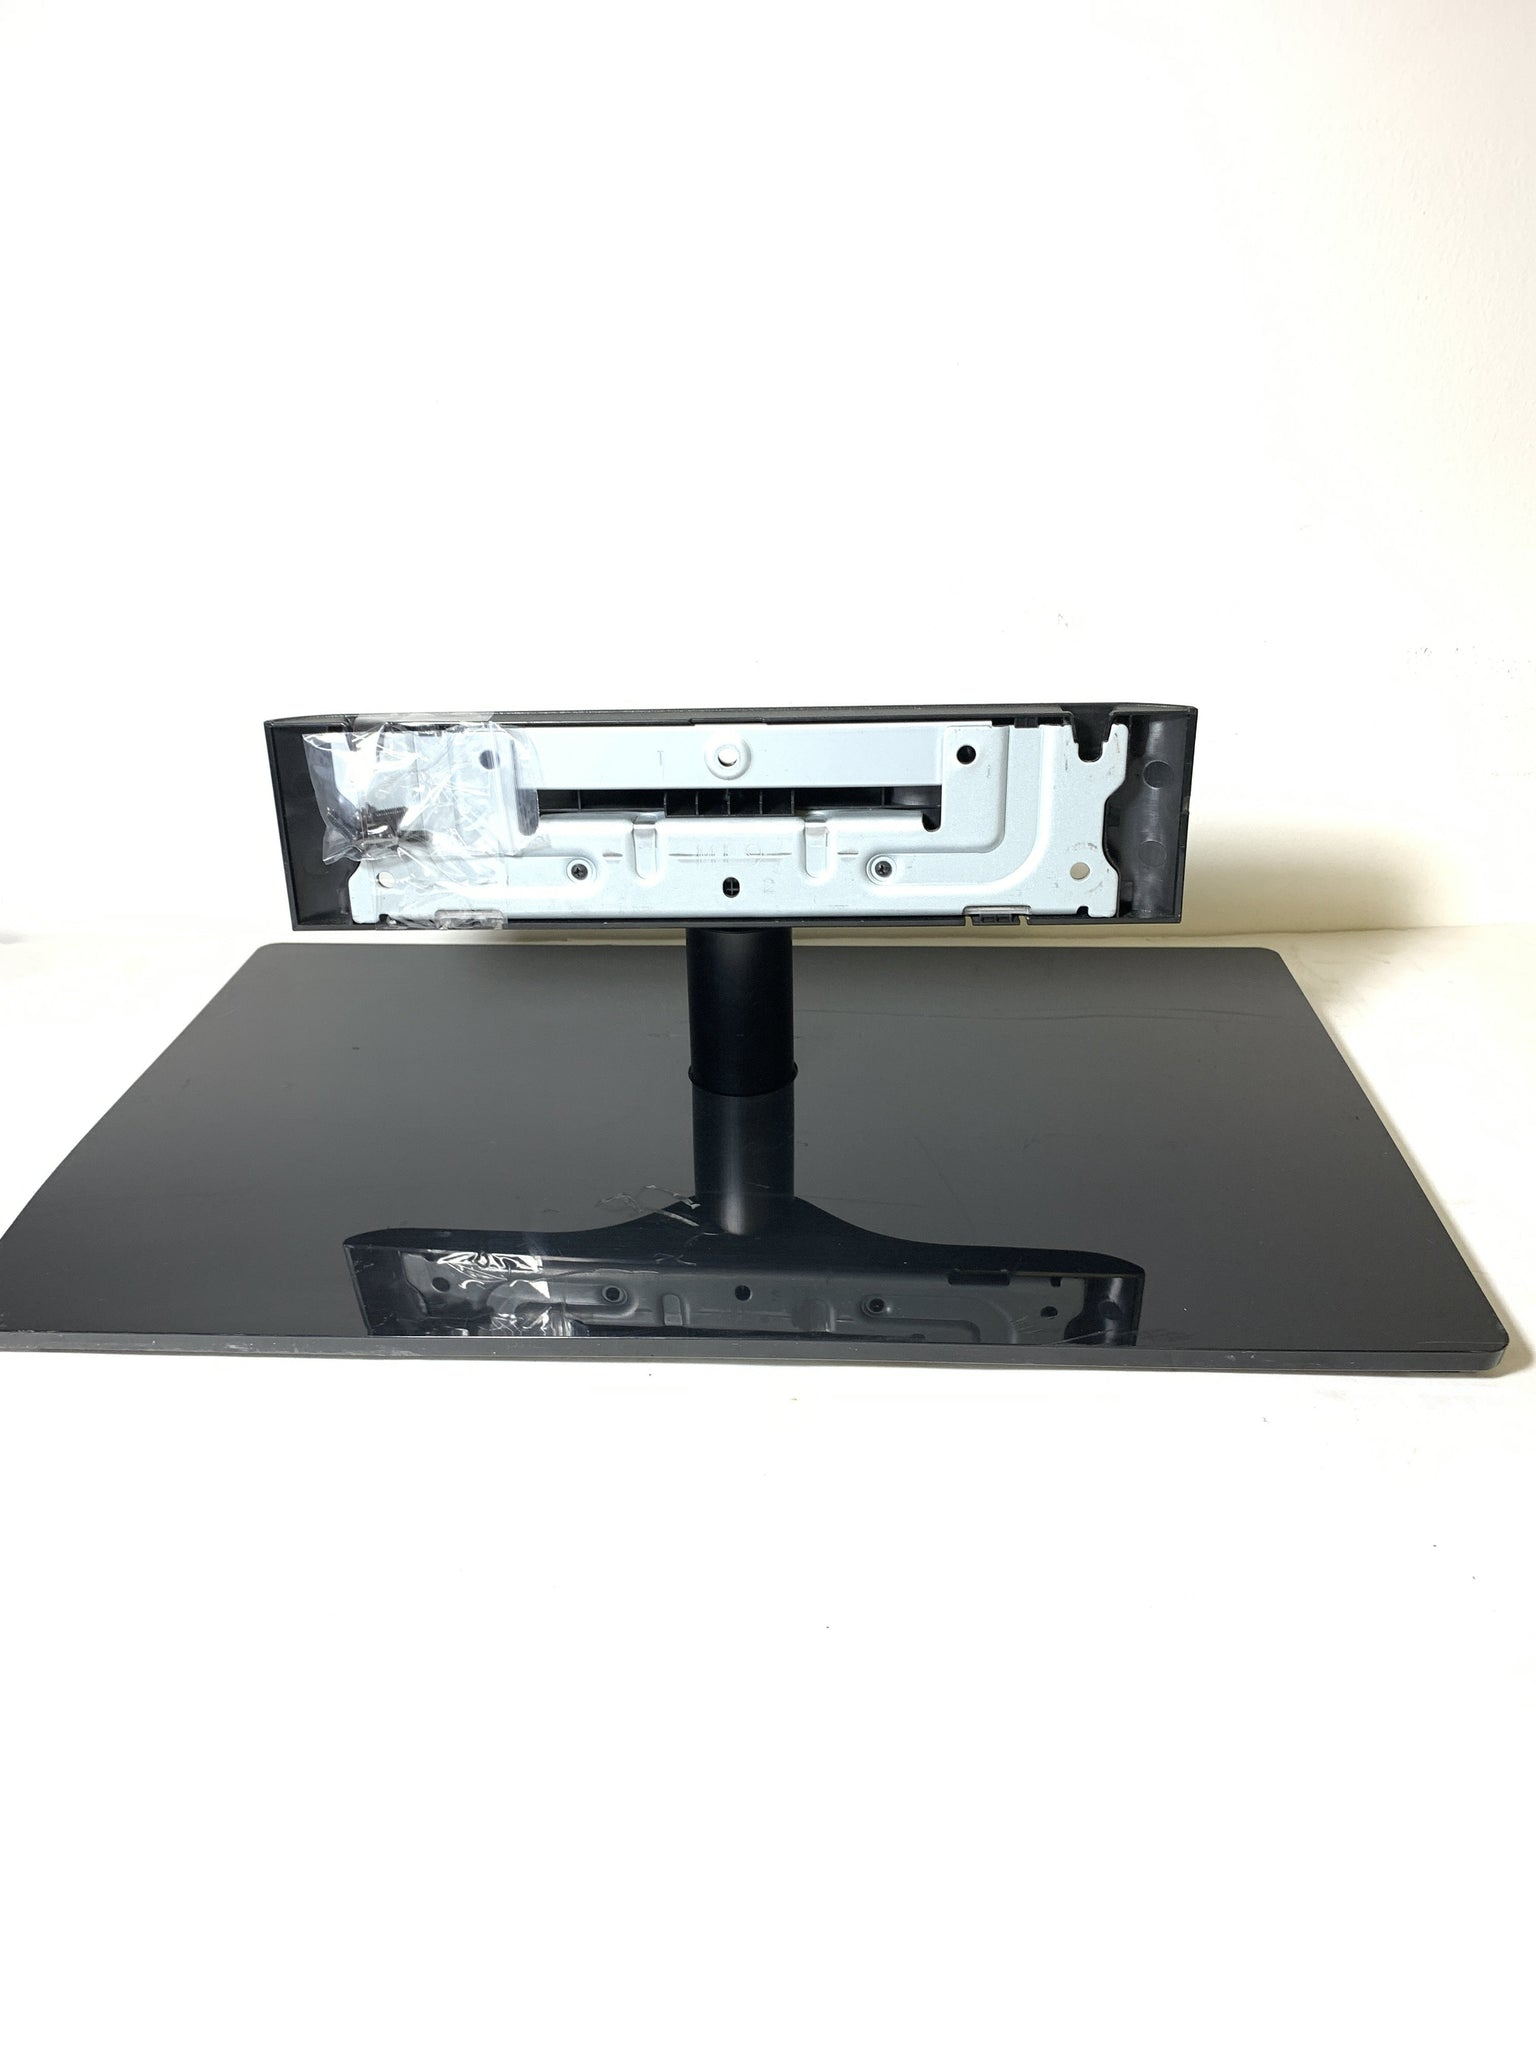 Sony KDL-55FX720 TV Stand/Base